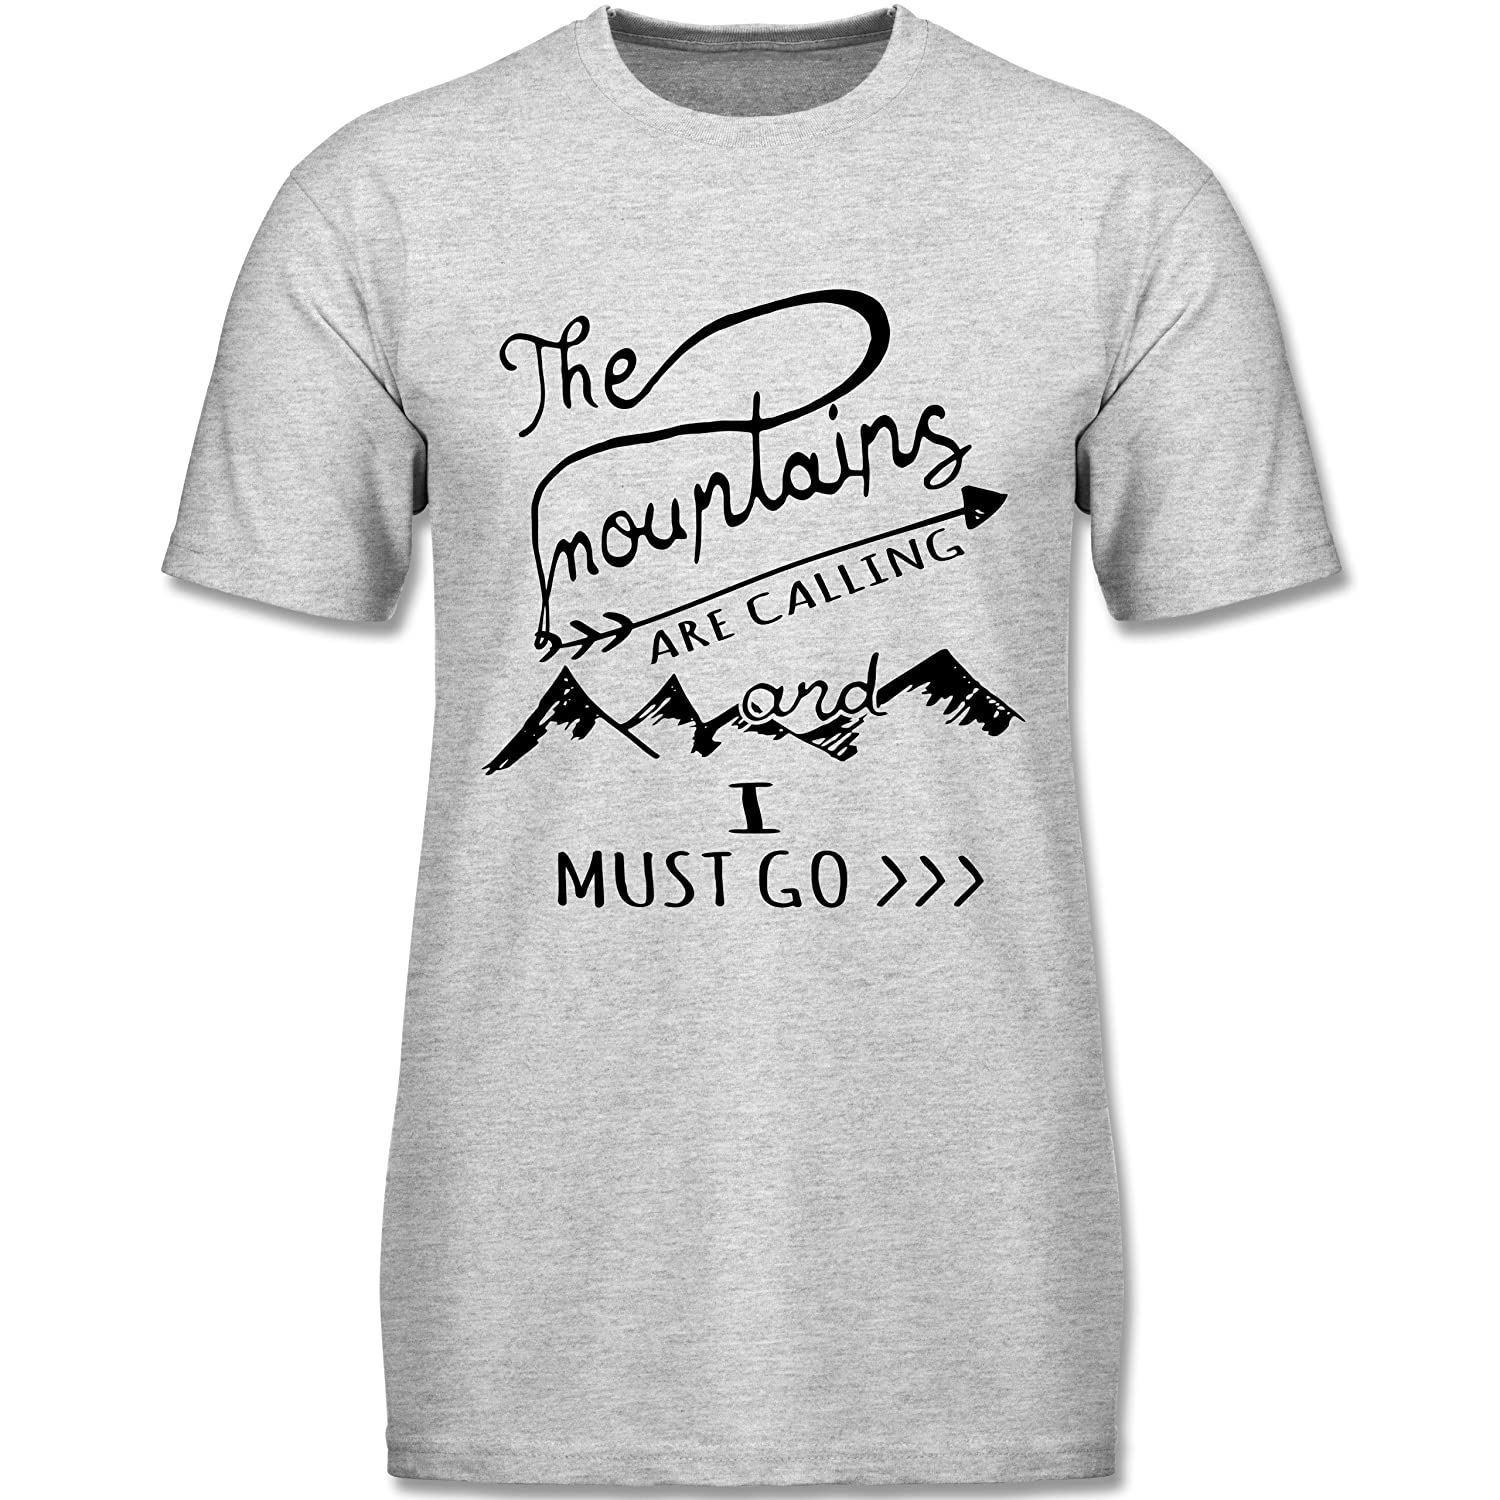 Wintersport - The Mountains are calling - kurzärmeliges Rundhalsausschnitt T-Shirt für Herren, Valueweight T